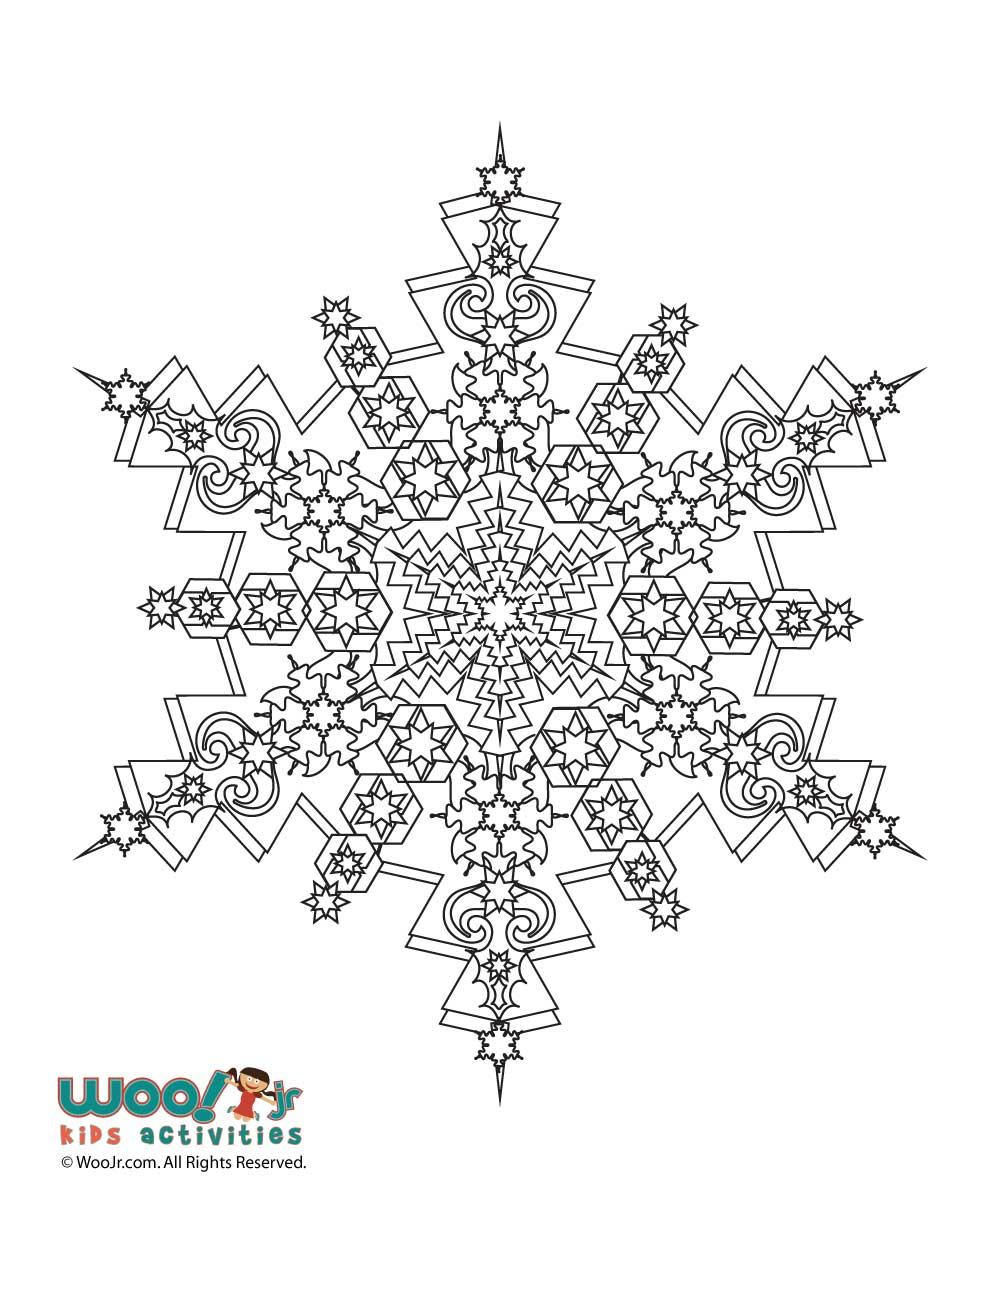 Snowflake Mandala Winter Adult Coloring Page | Woo! Jr. Kids ...